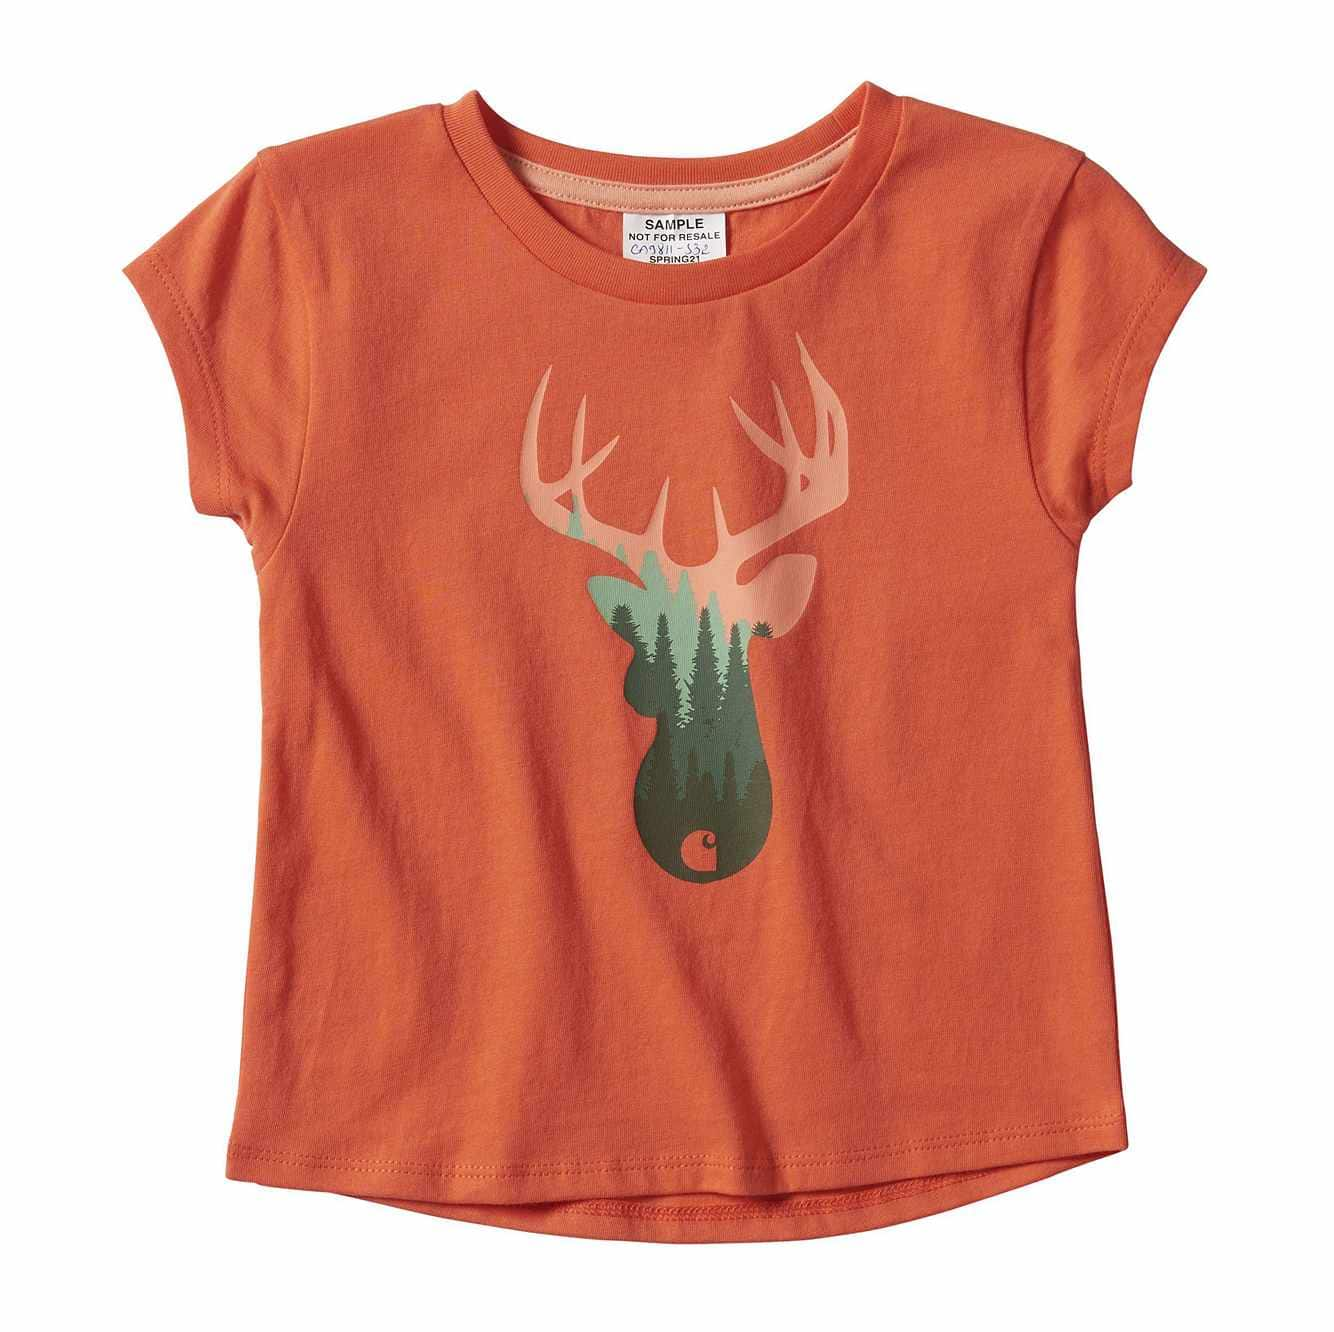 Picture of Treeline Deer Graphic T-Shirt in Coral